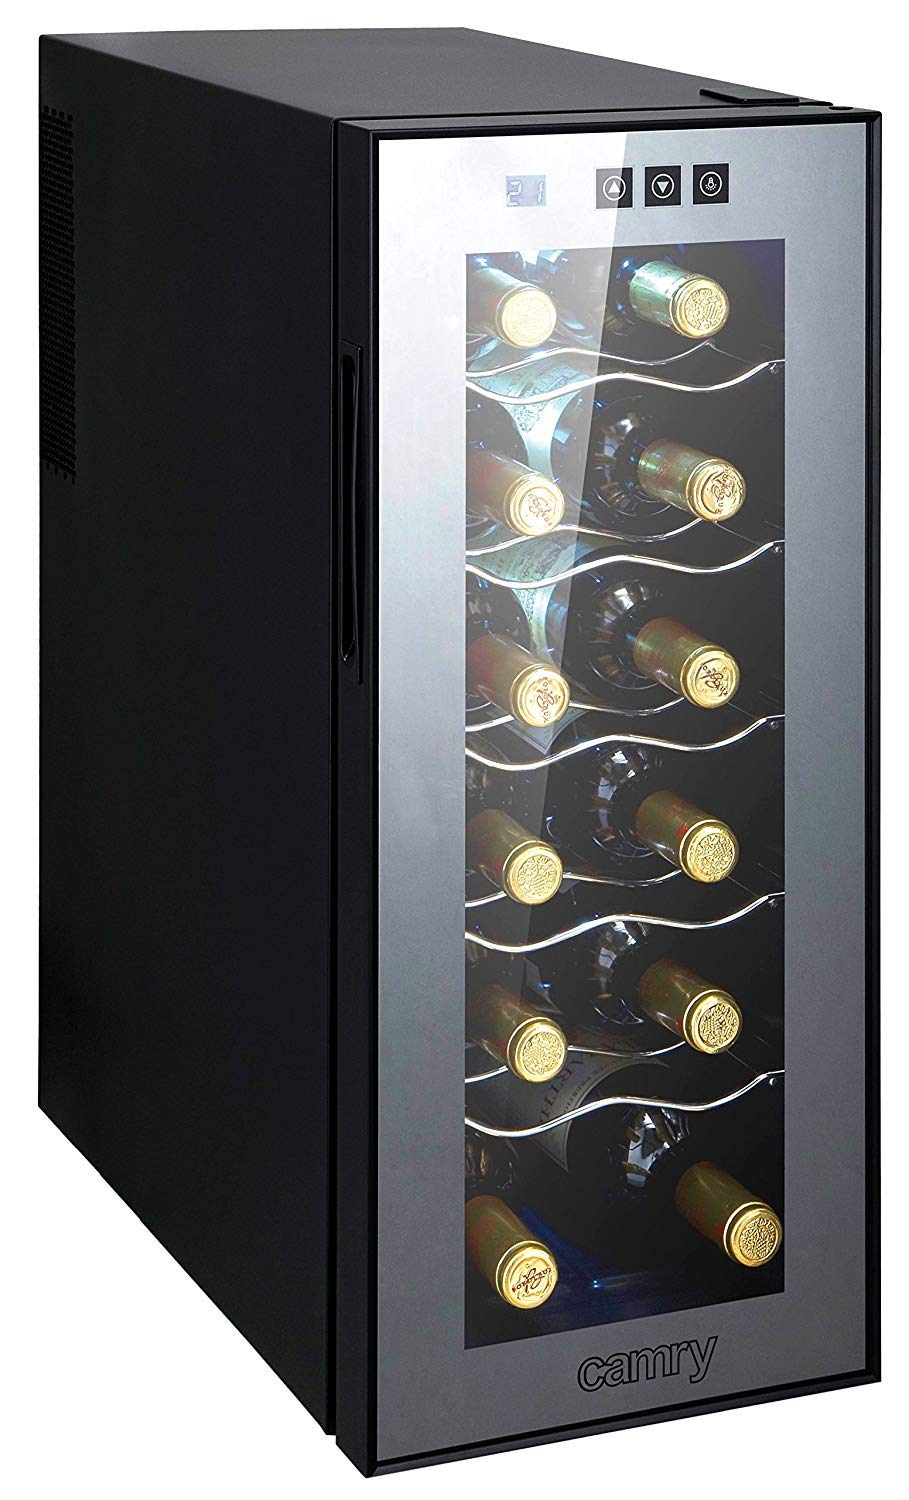 weink hlschrank 33 liter 12 flasche weink hler. Black Bedroom Furniture Sets. Home Design Ideas